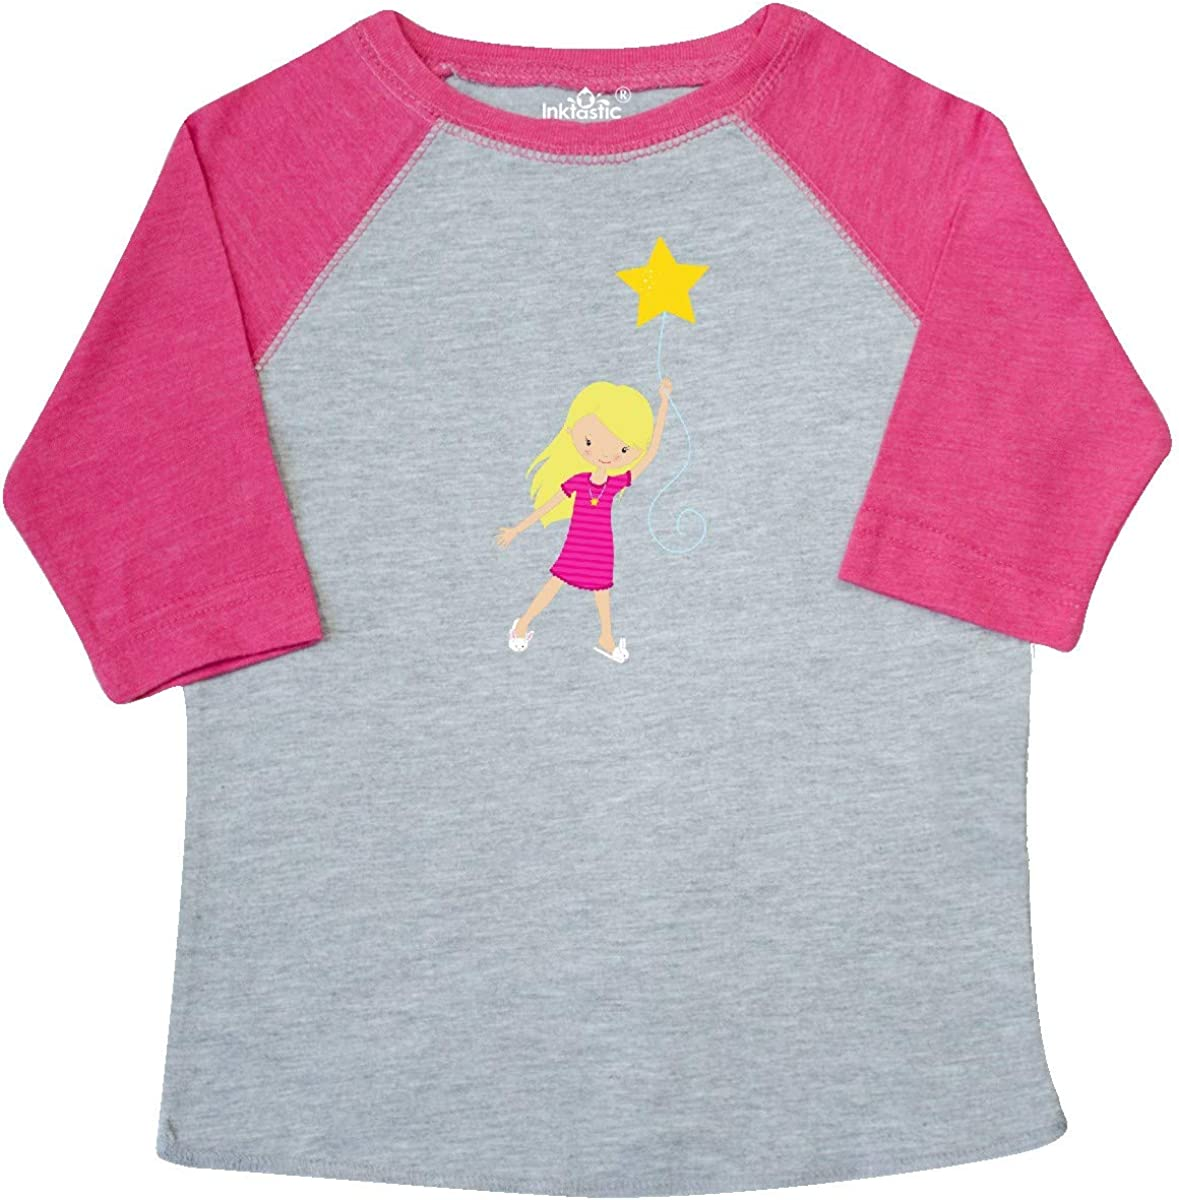 Girl Holding a Star inktastic Girl in Pajamas Cute Girl Toddler T-Shirt